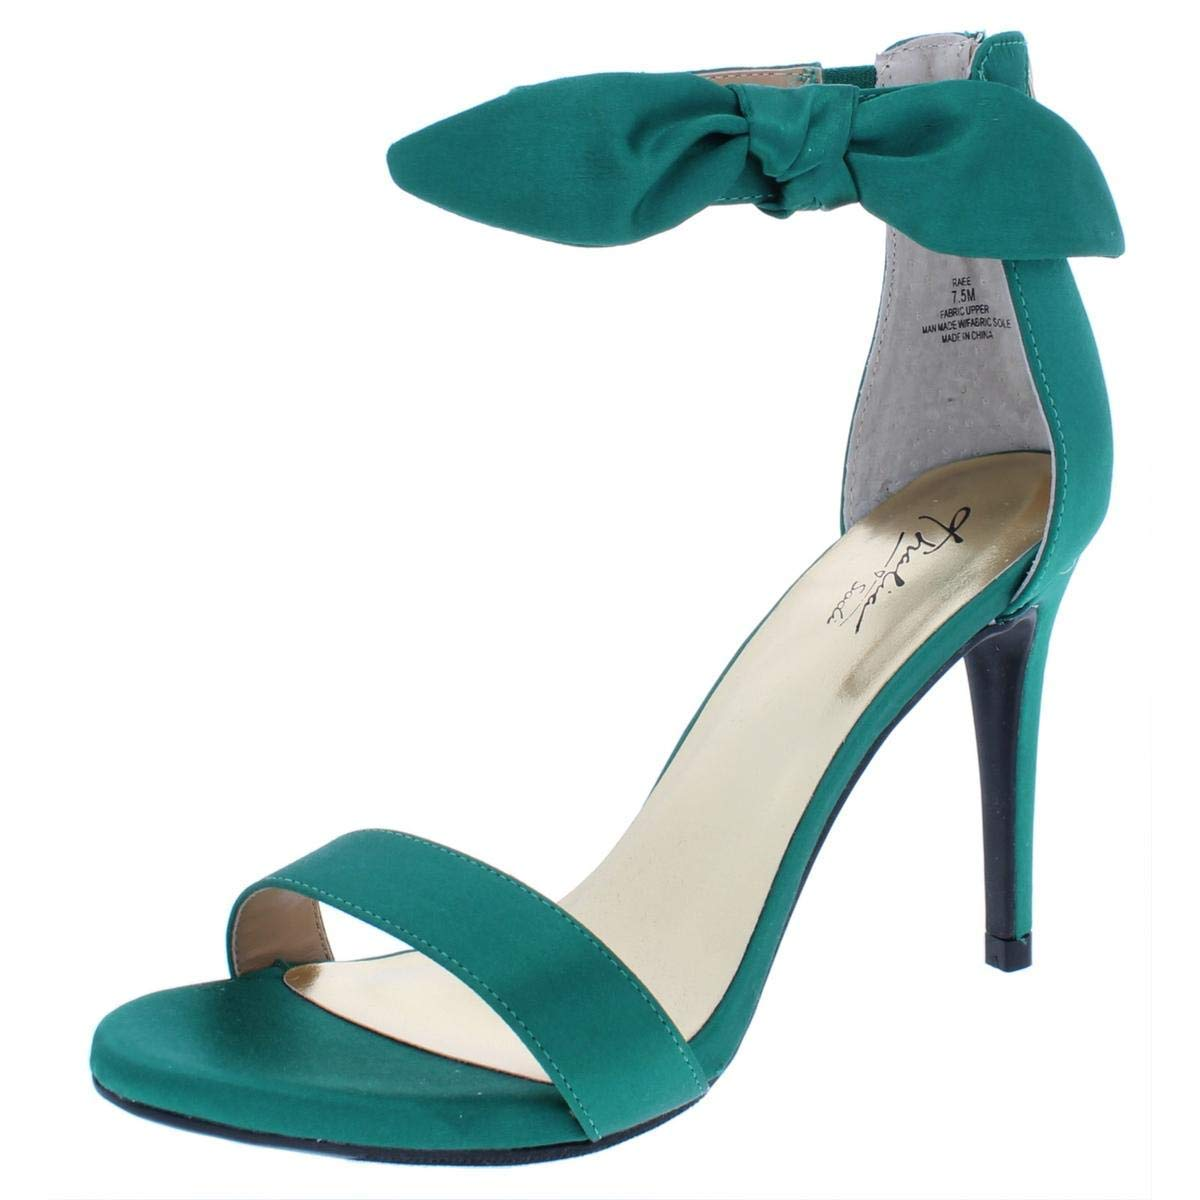 Thalia Sodi Womens Raee Satin Heels Evening Sandals, Emerald Satin, Size 6.0